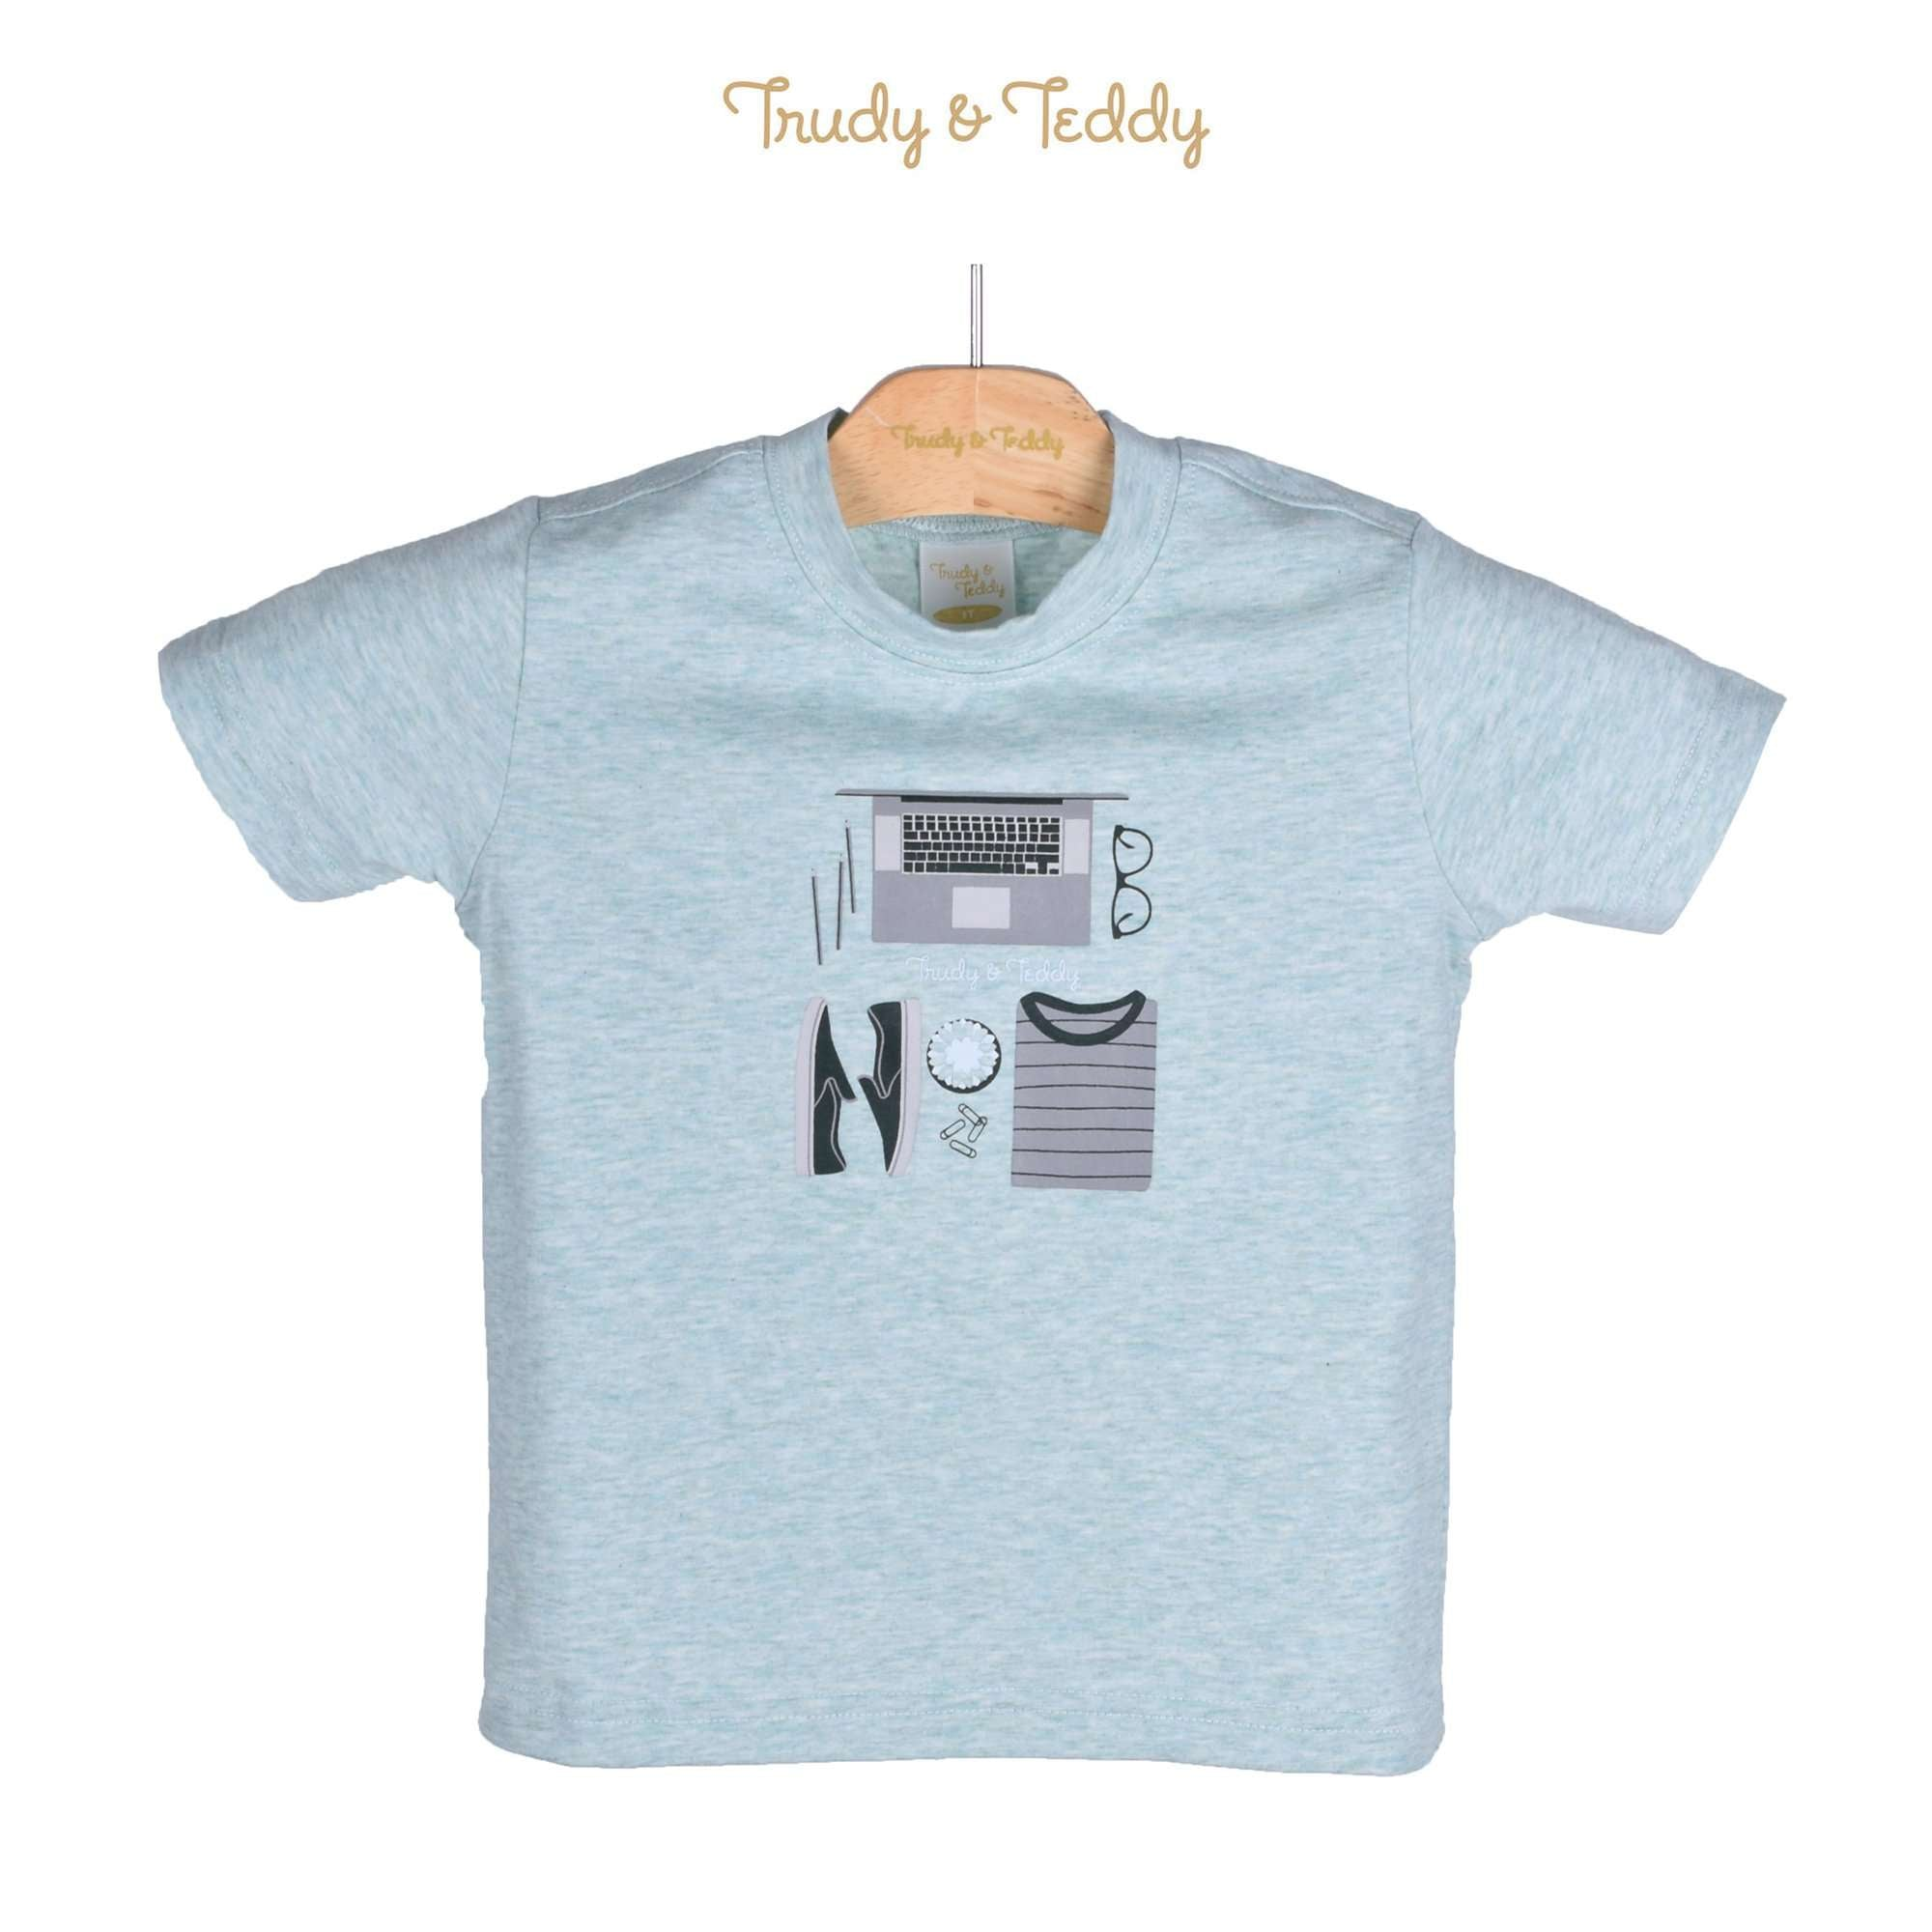 Trudy & Teddy Toddler Boy Short Sleeve Tee 825046-112 : Buy Trudy & Teddy online at CMG.MY